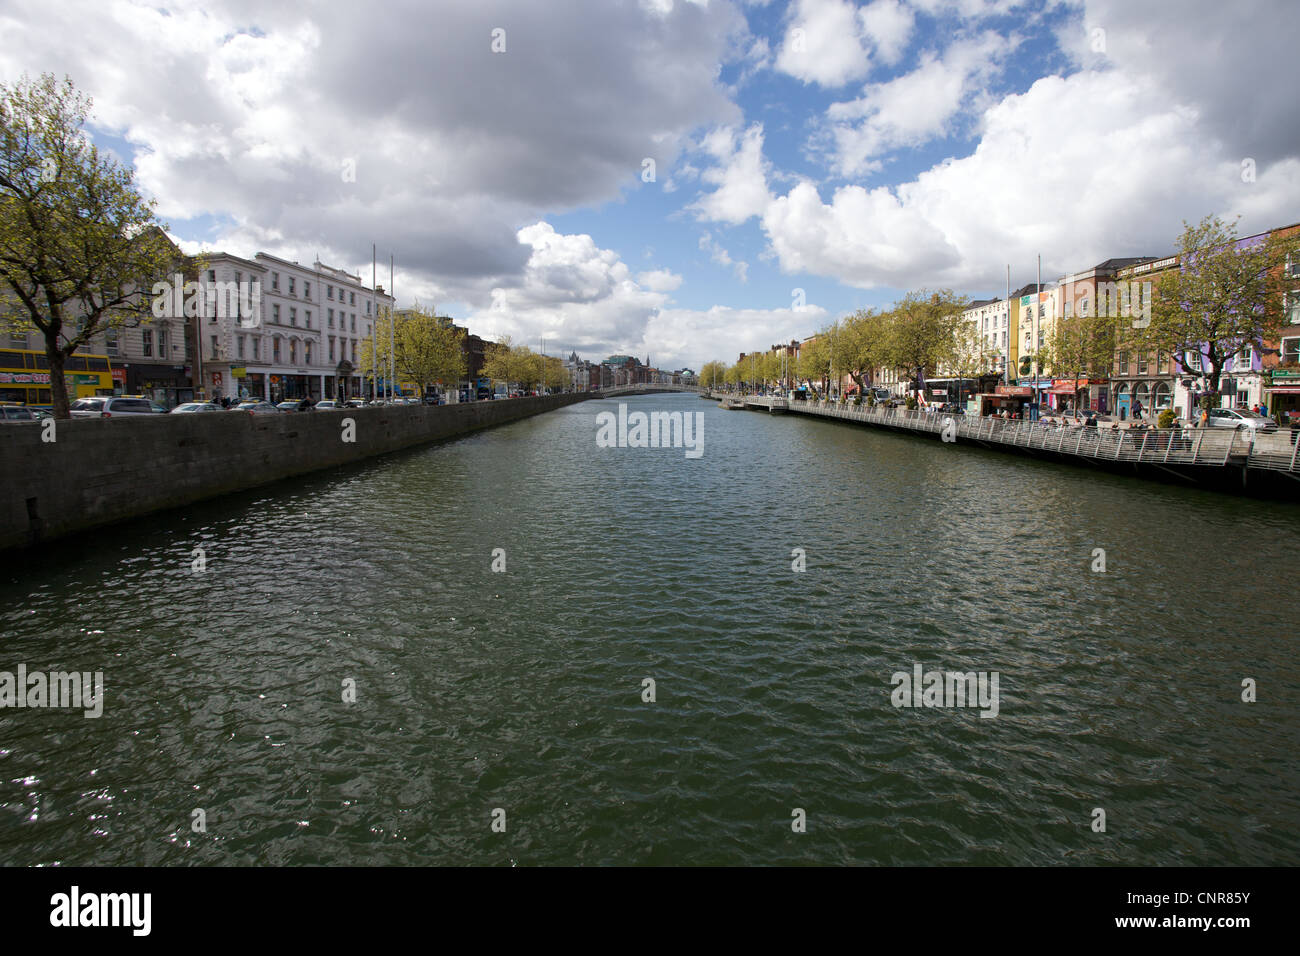 The view from O'Connell Bridge looking west along the River Liffey in Dublin, Ireland. - Stock Image